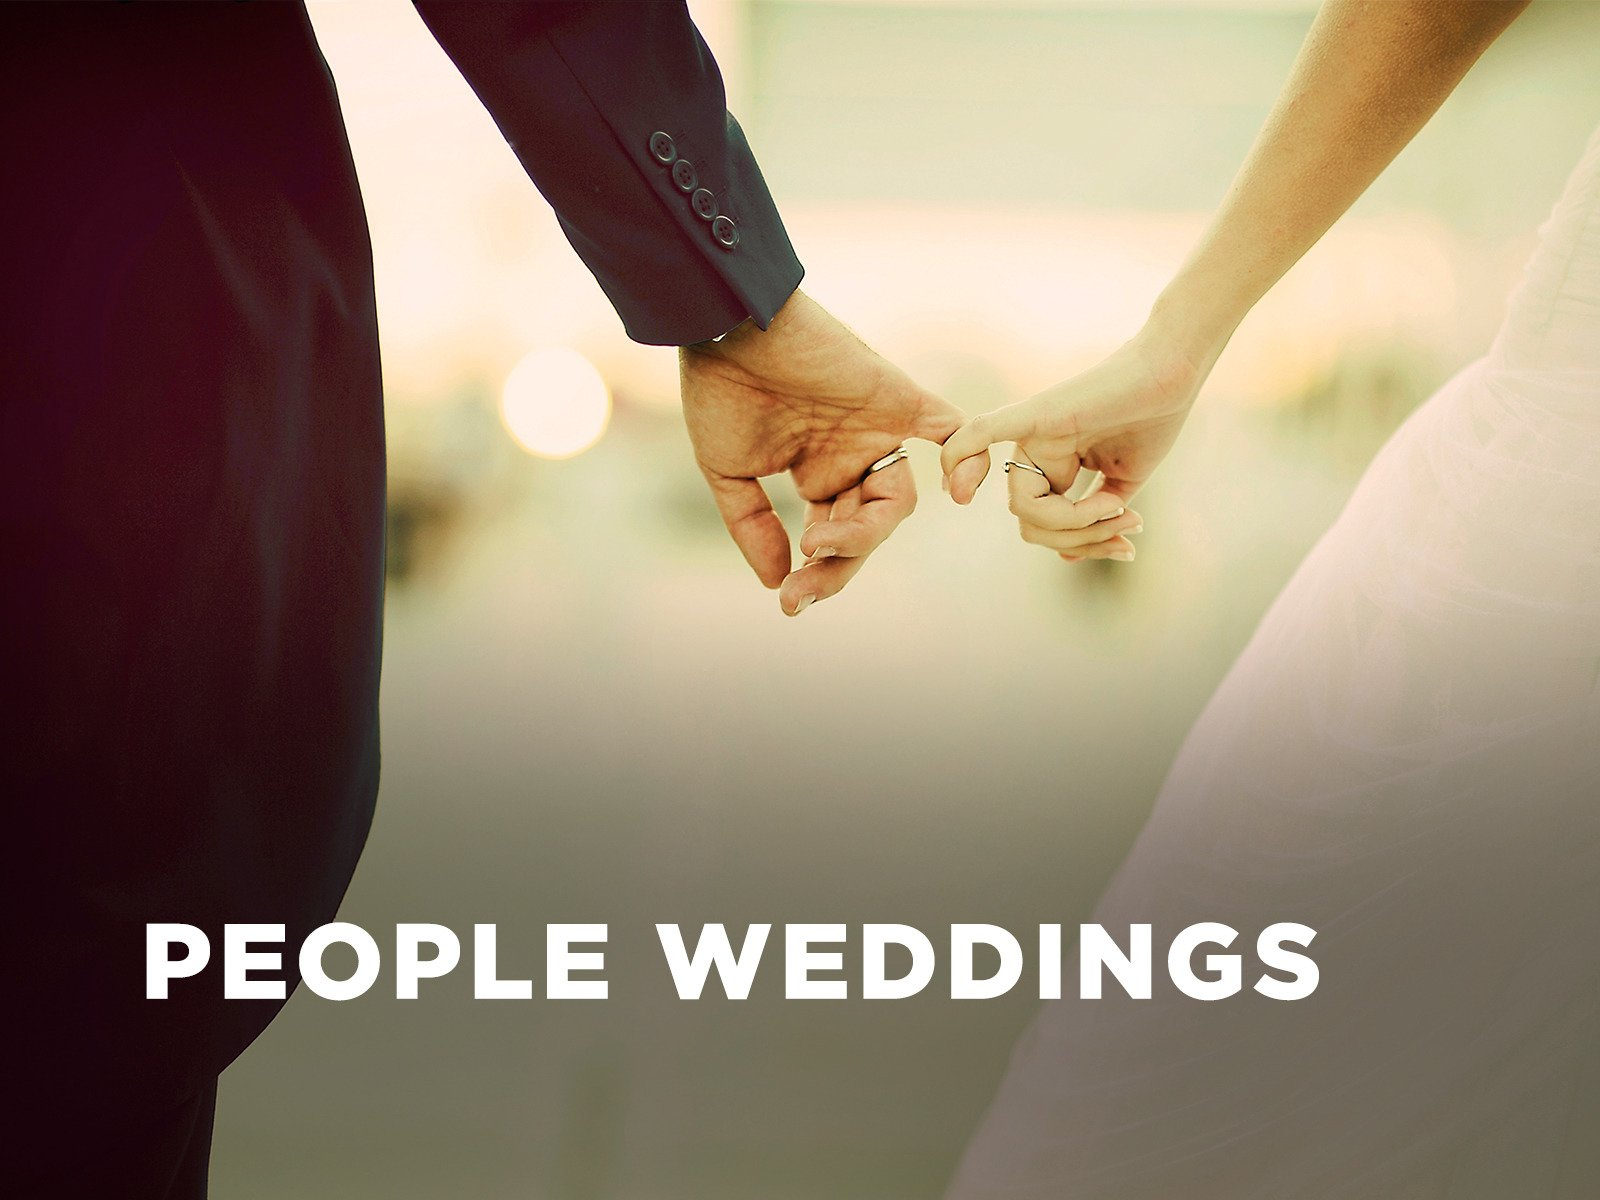 People Weddings - Season 1